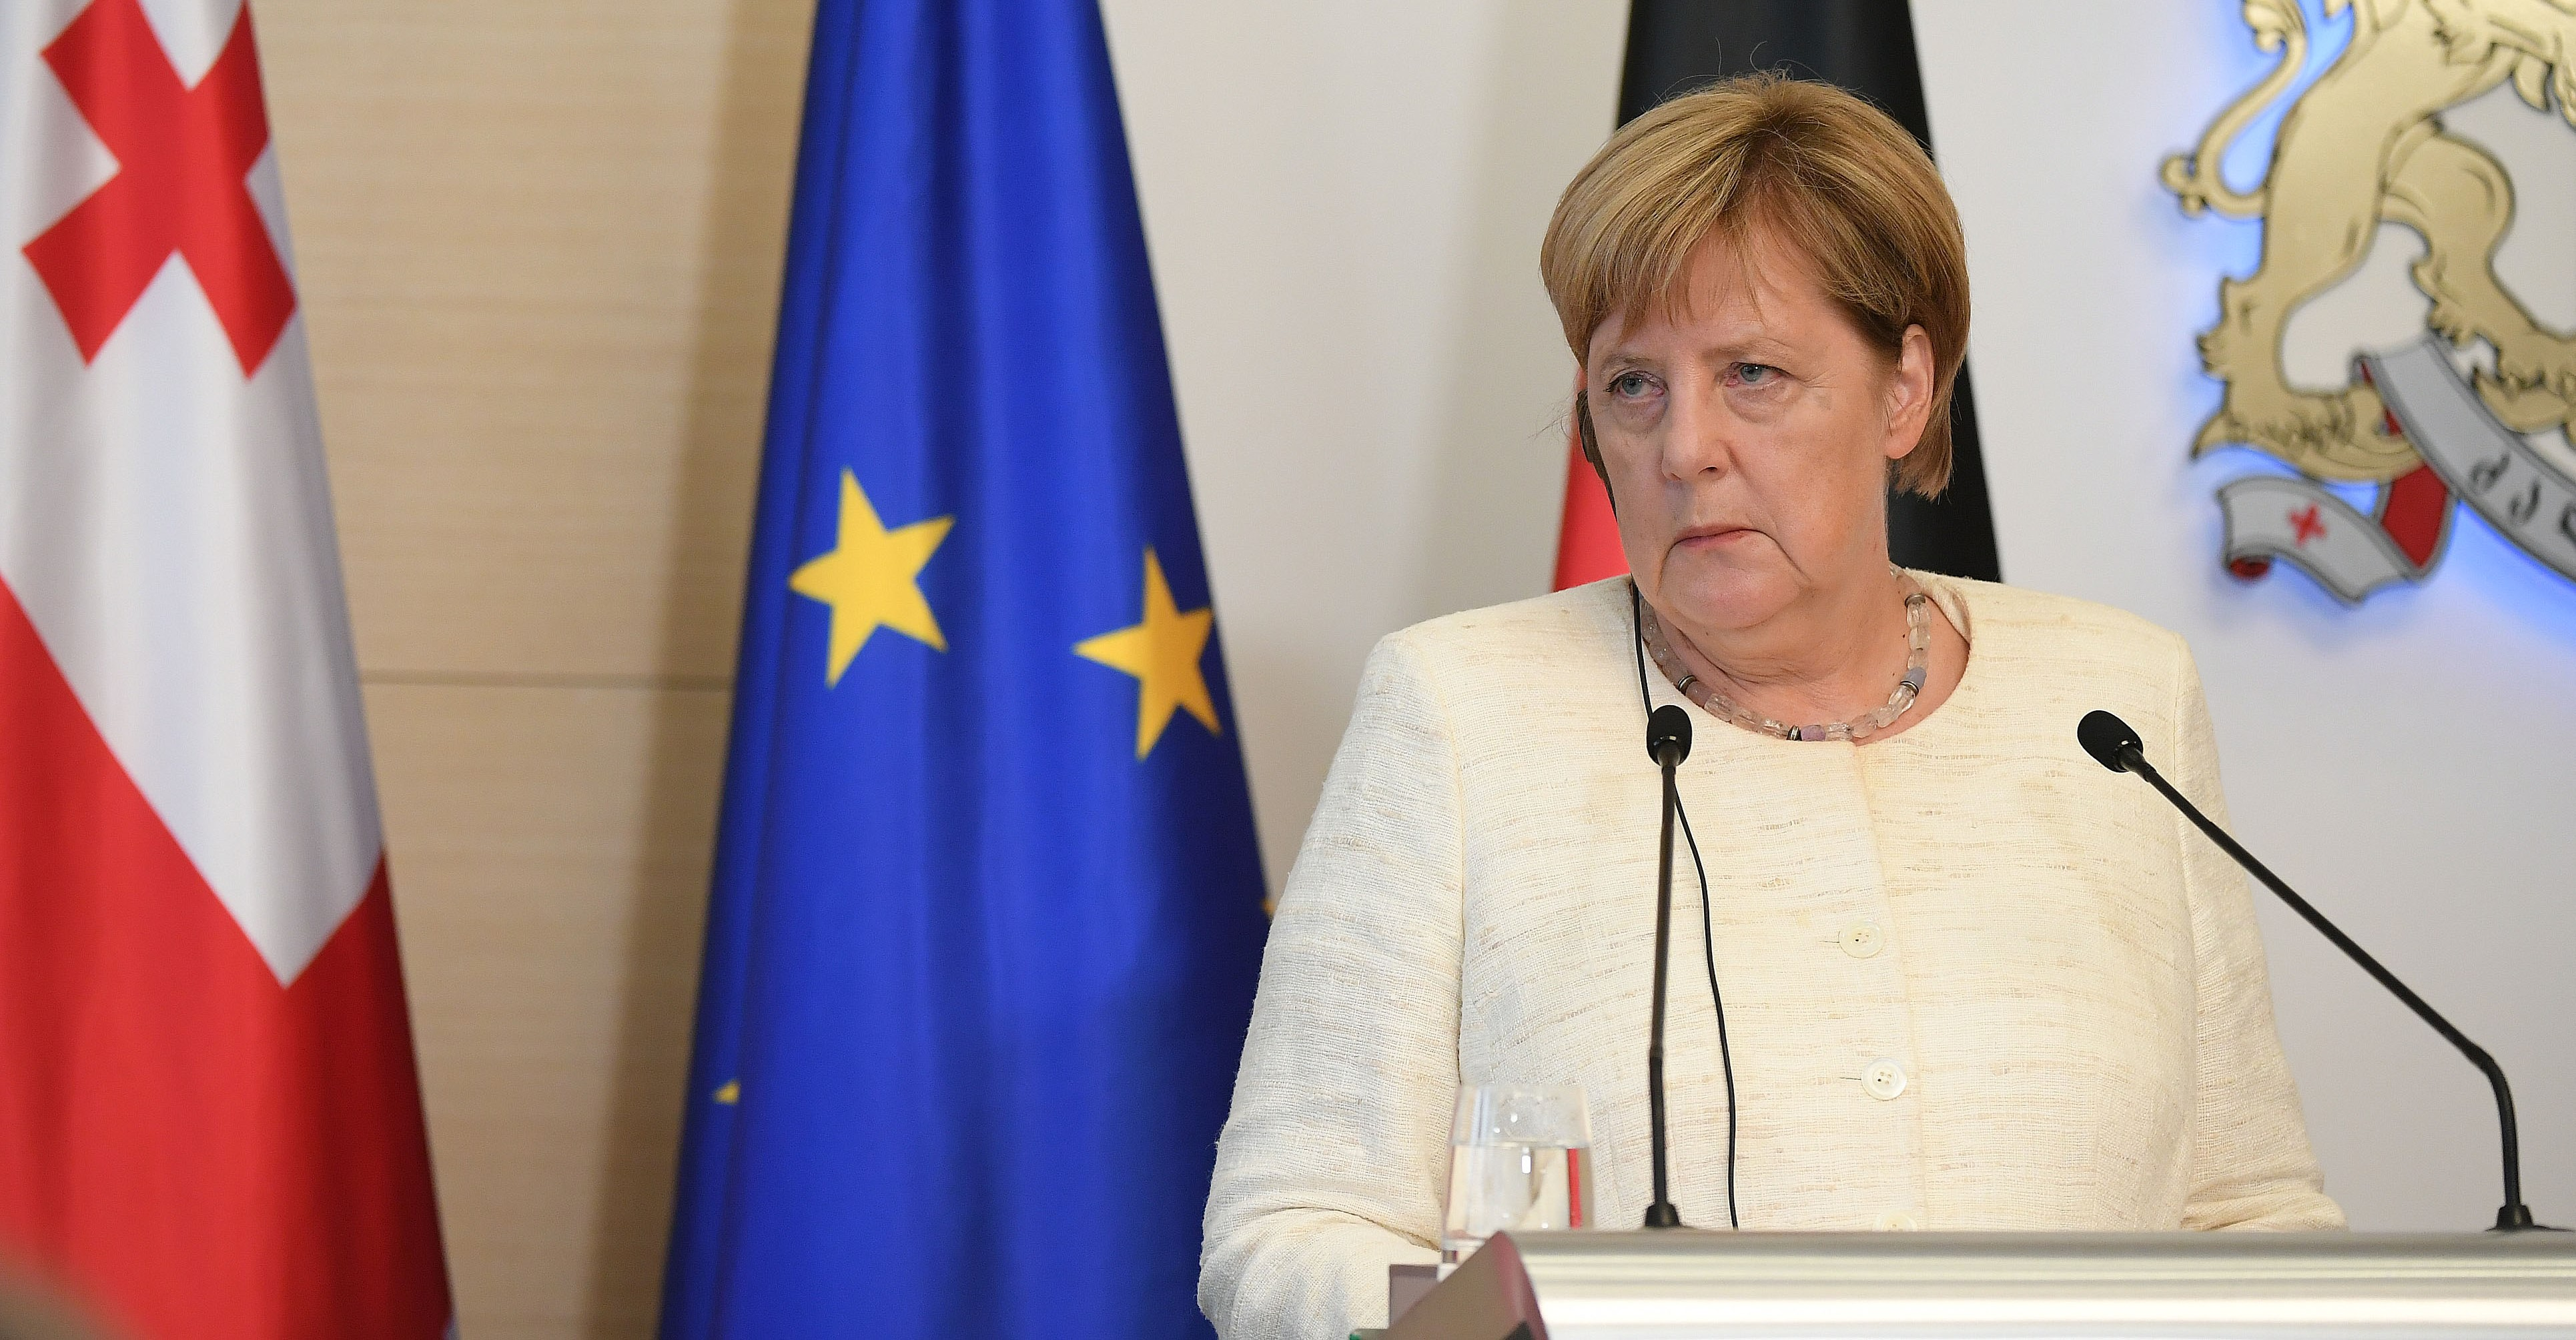 German Cabinet meets to approve financial aid after flooding